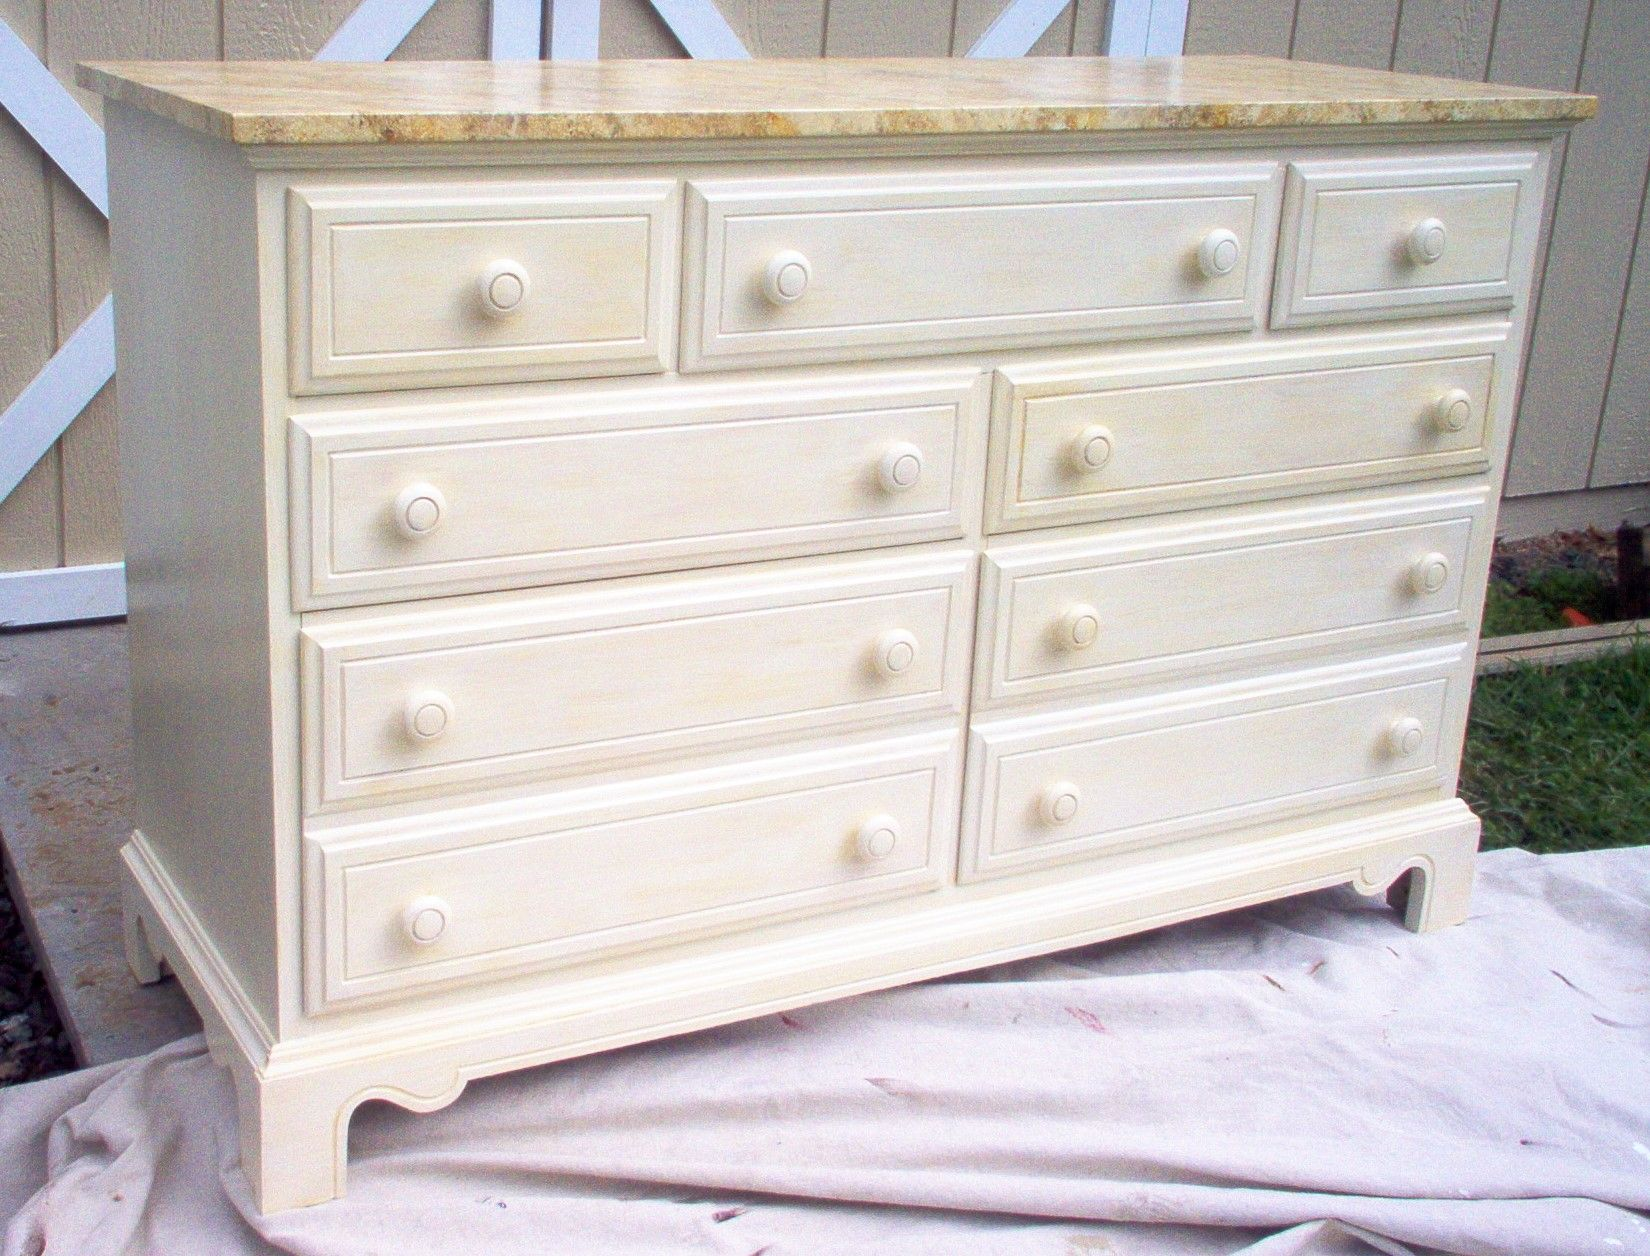 Dresser painted white with faux marble top